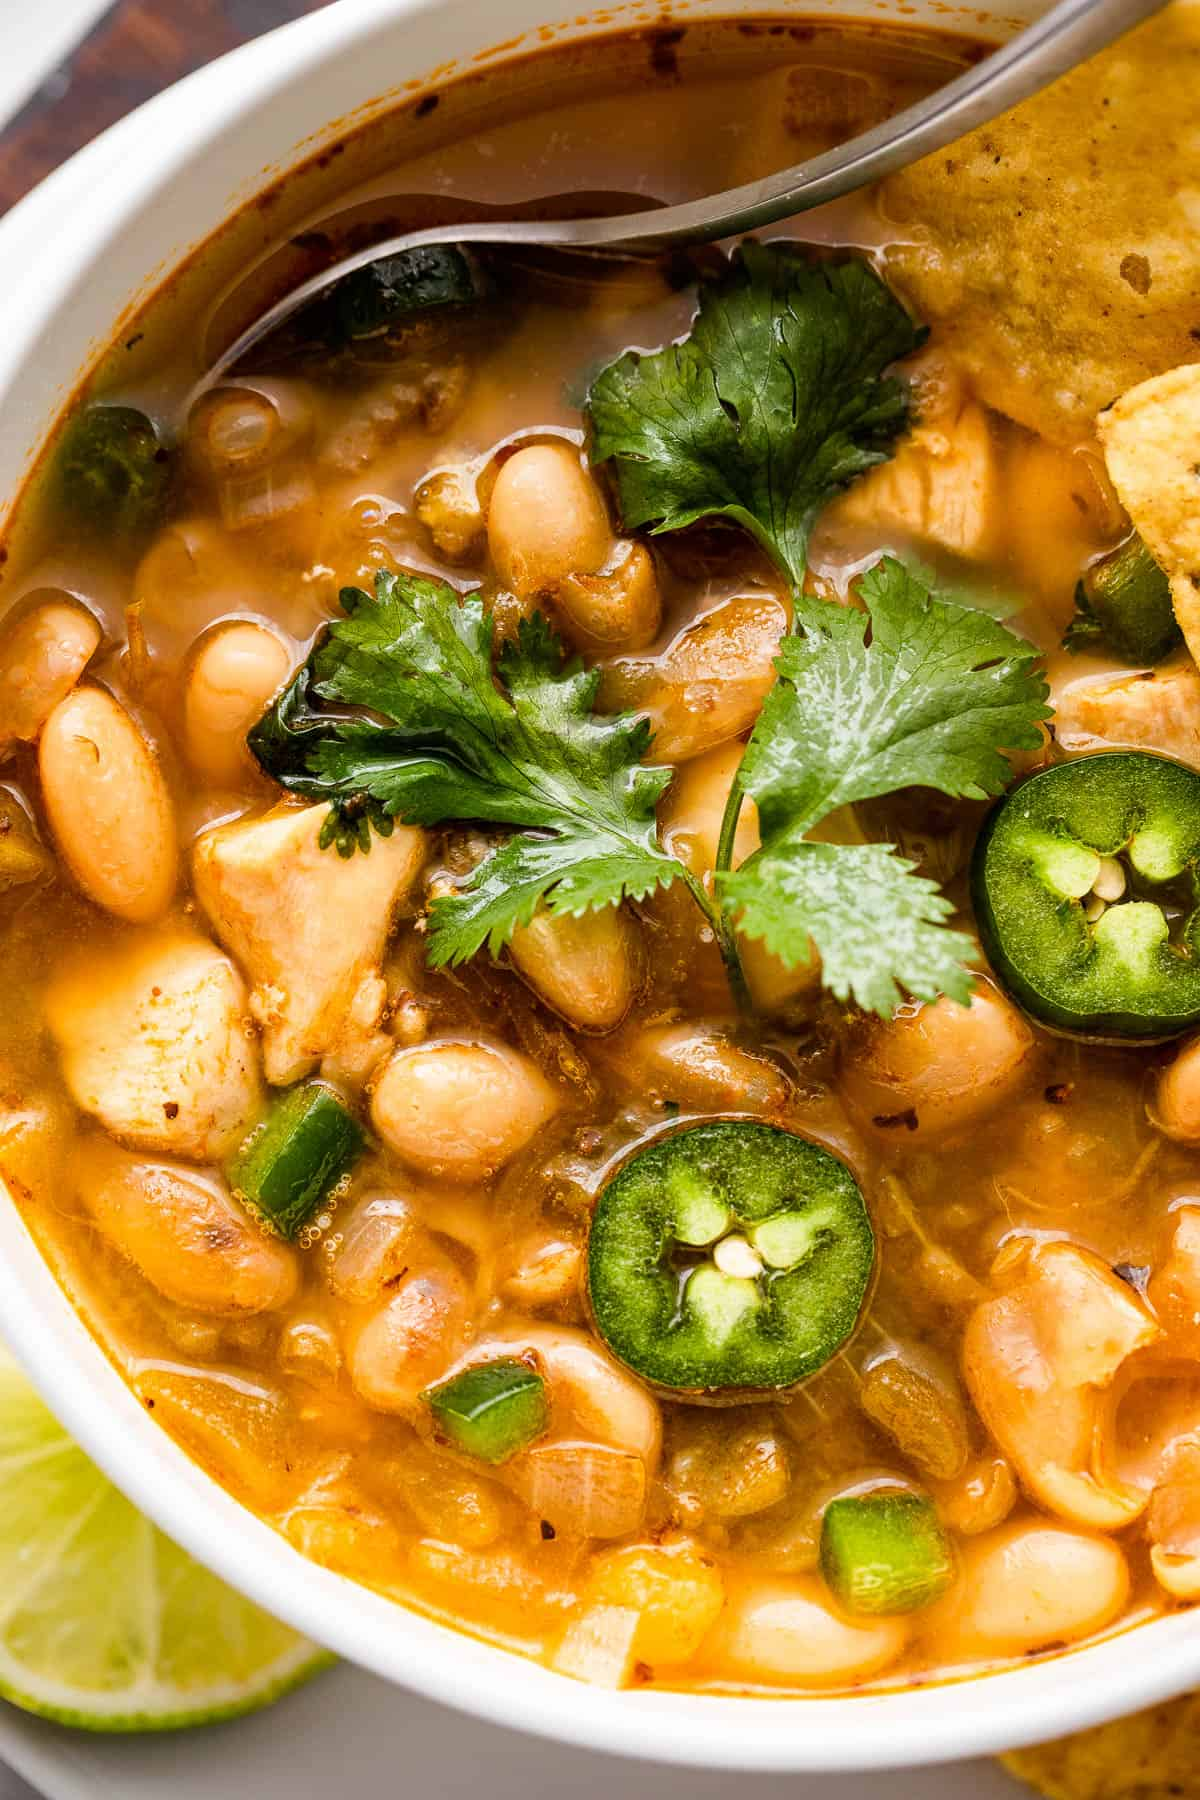 overhead shot of chicken chili with beans in a soup bowl topped with jalapeno slices and cilantro leaves